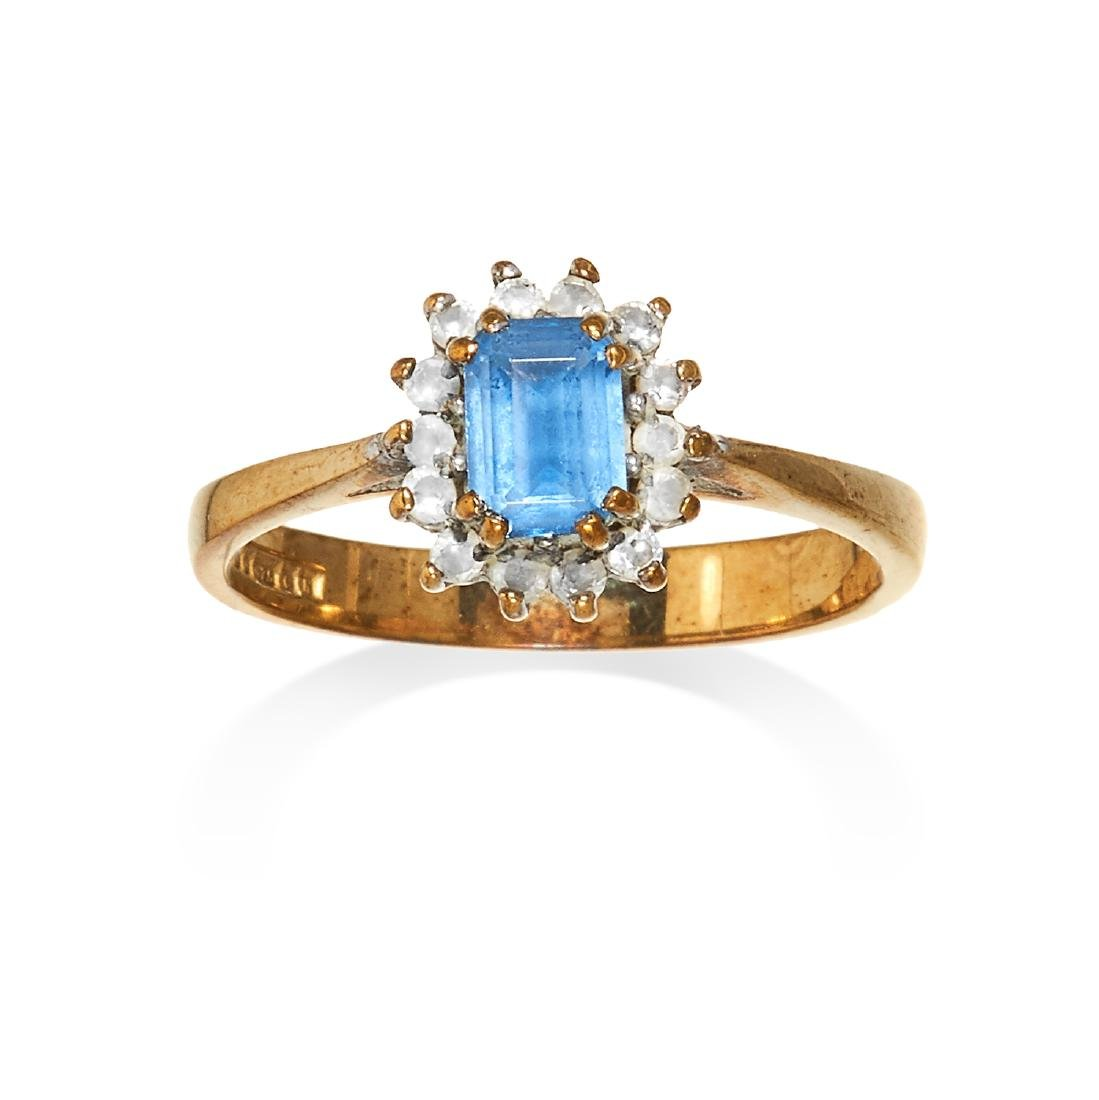 A TOPAZ CLUSTER RING in yellow gold the step cut topaz